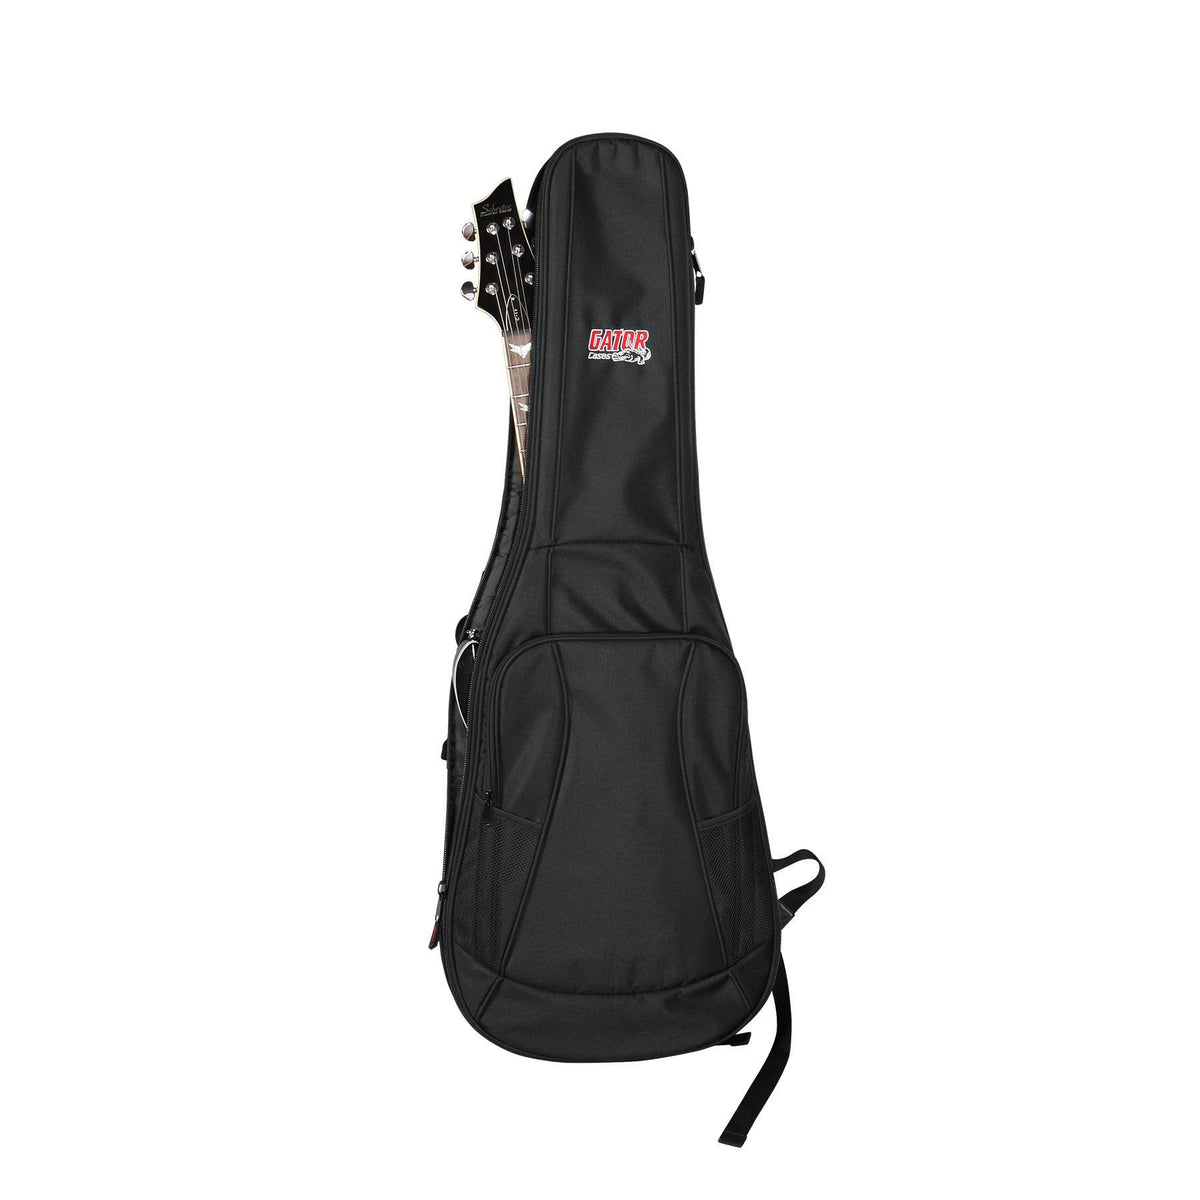 Gator Electric Guitar Backpack Gig Bag for Gibson Les Paul Deluxe, Studio, Junior, Menace Guitars